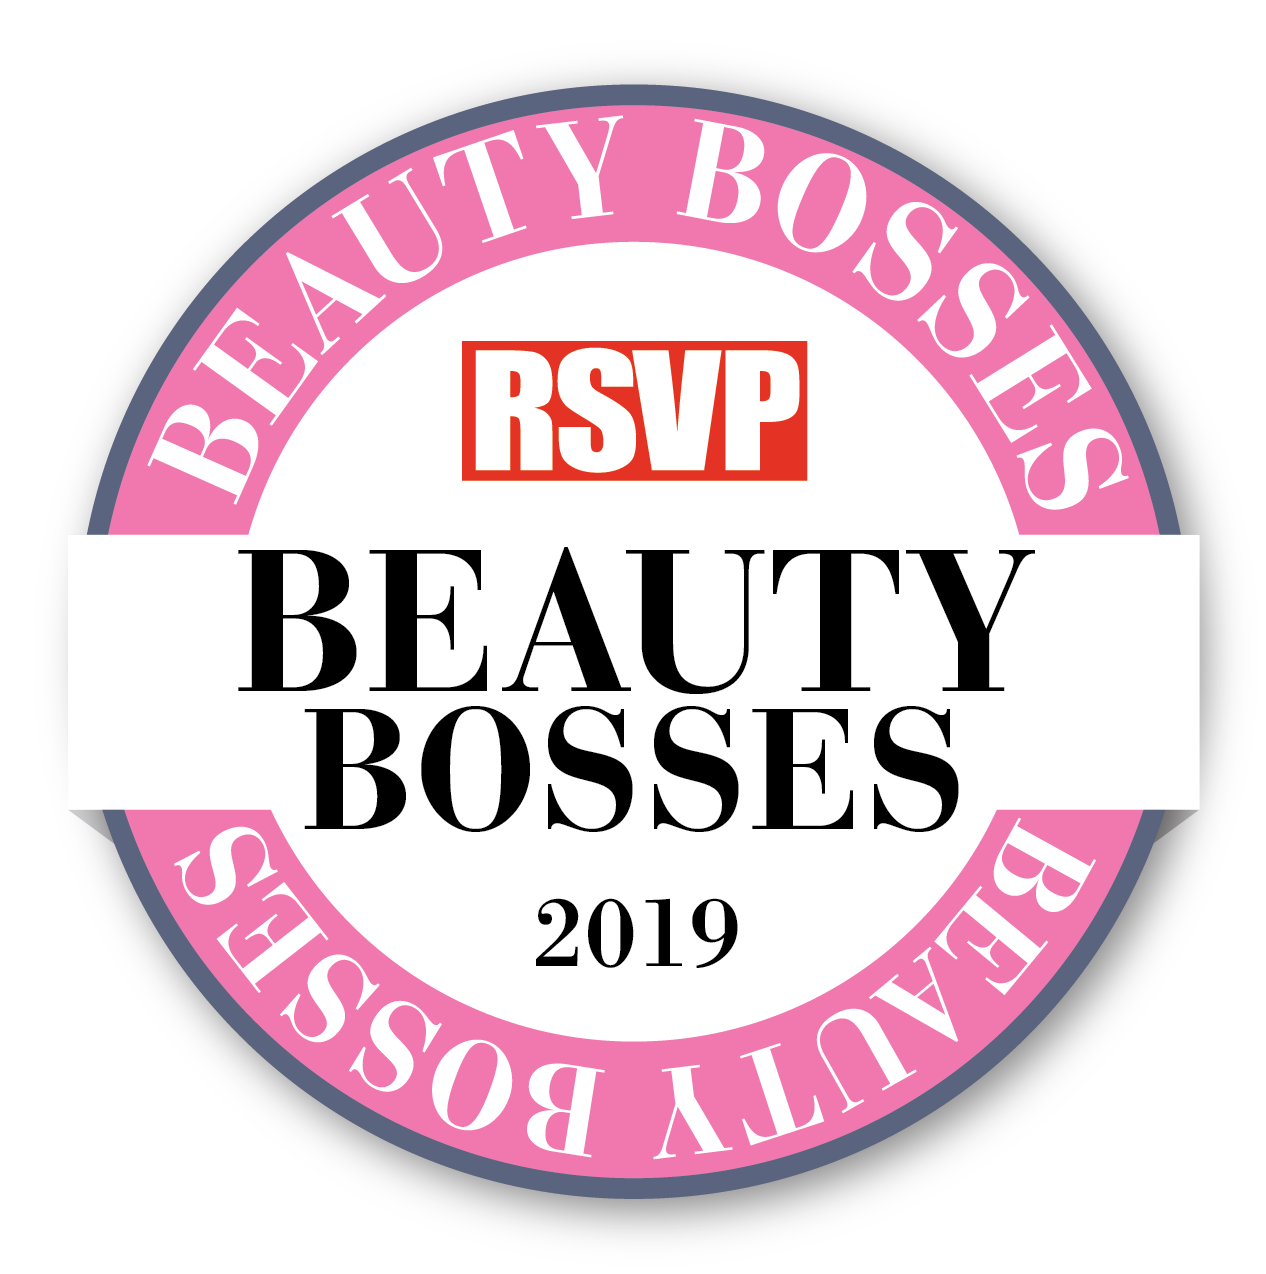 BEAUTYBOSSES2019.png